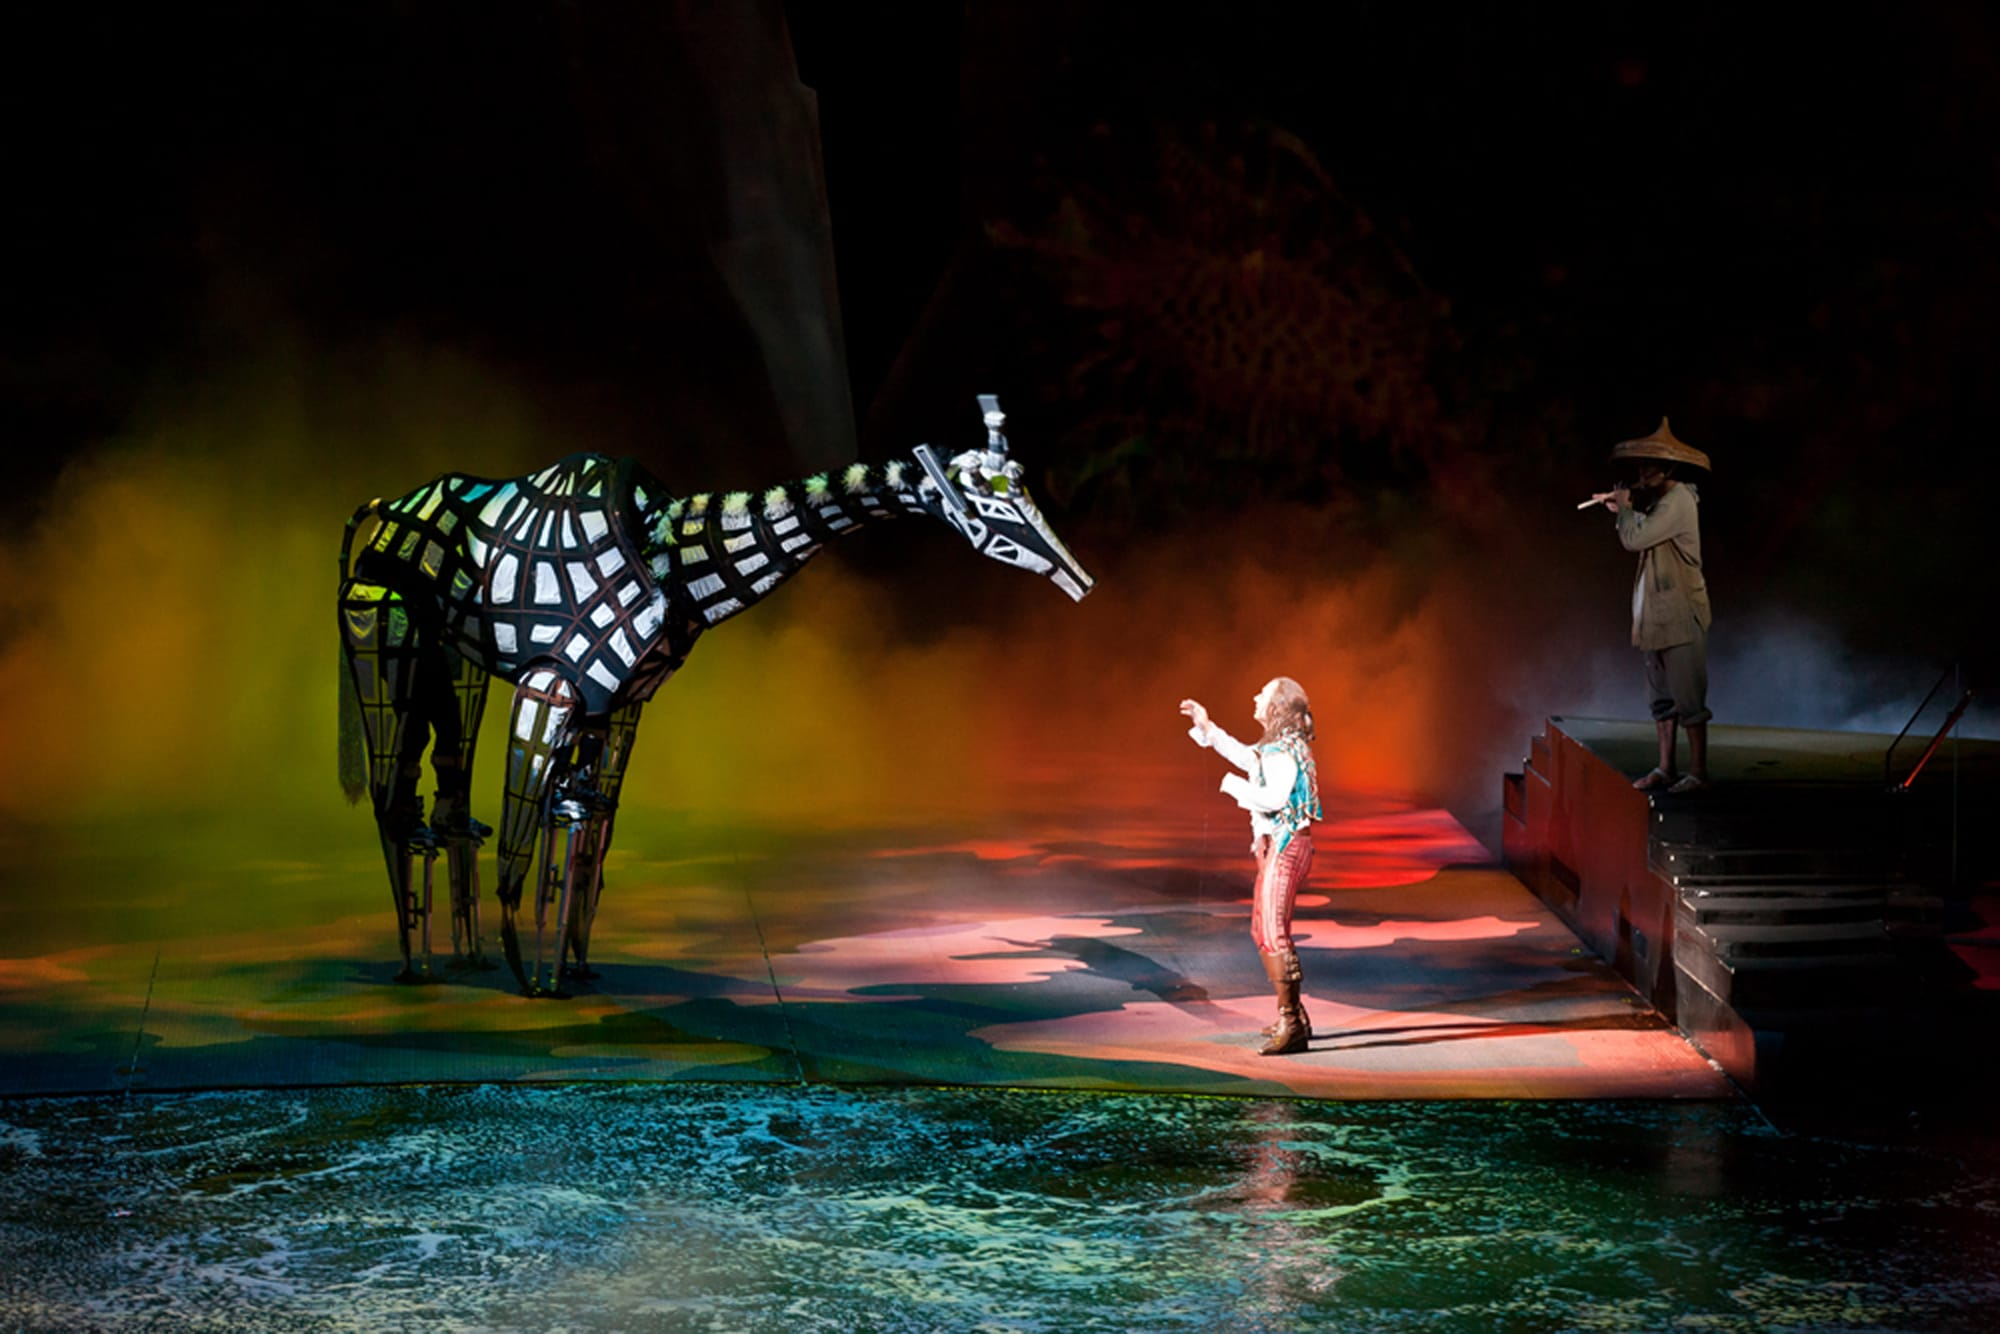 A mystic giraffe character and stranger on stage.